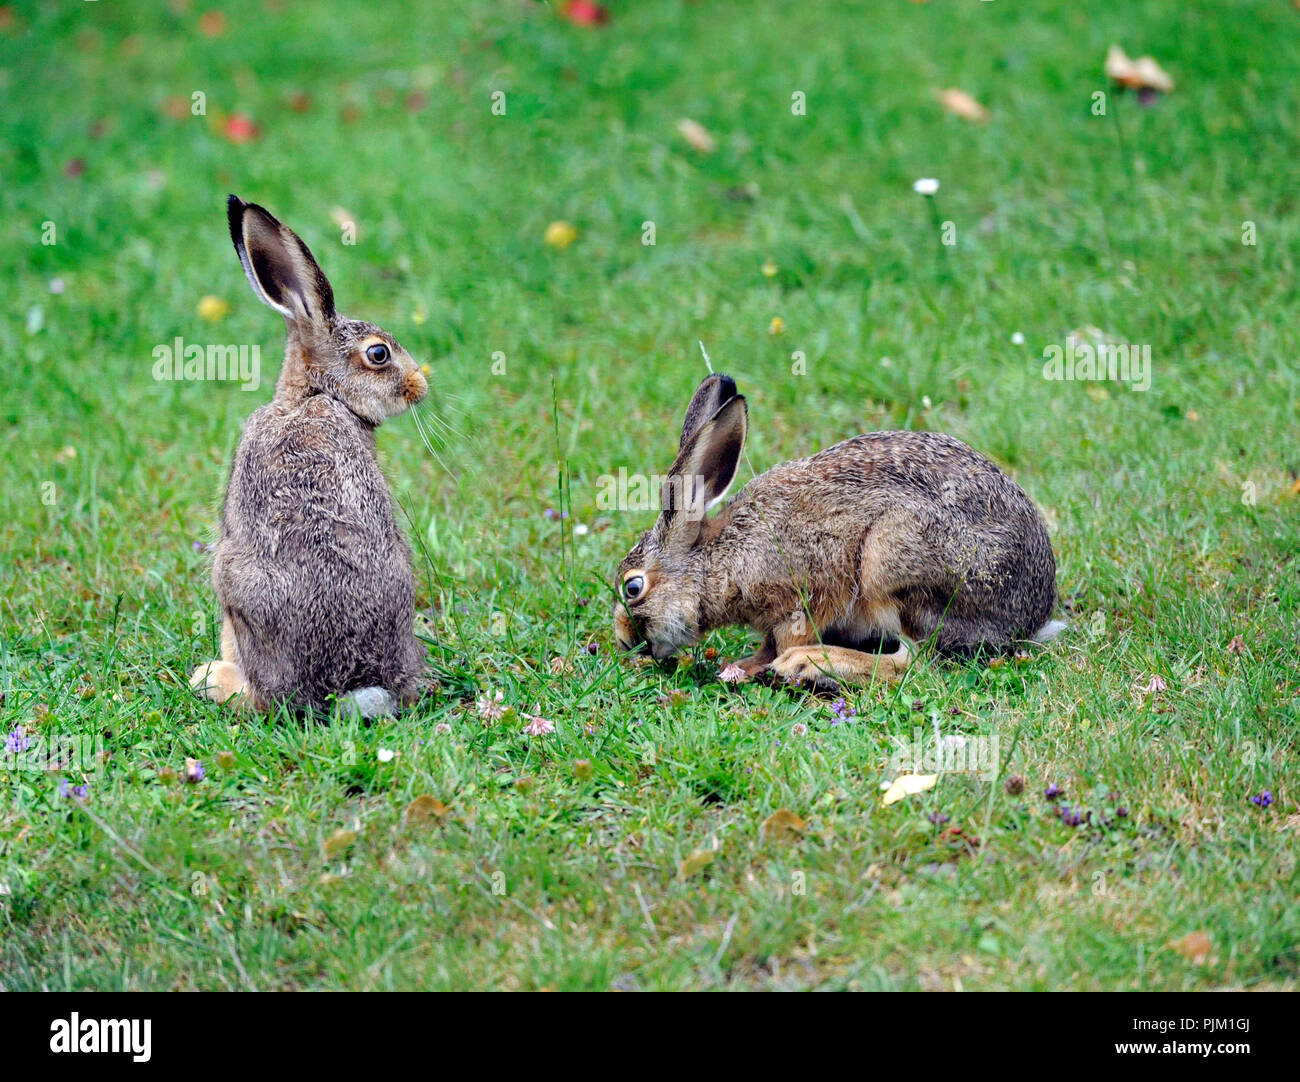 Field hares hop in search of food in the summer meadow - Stock Image